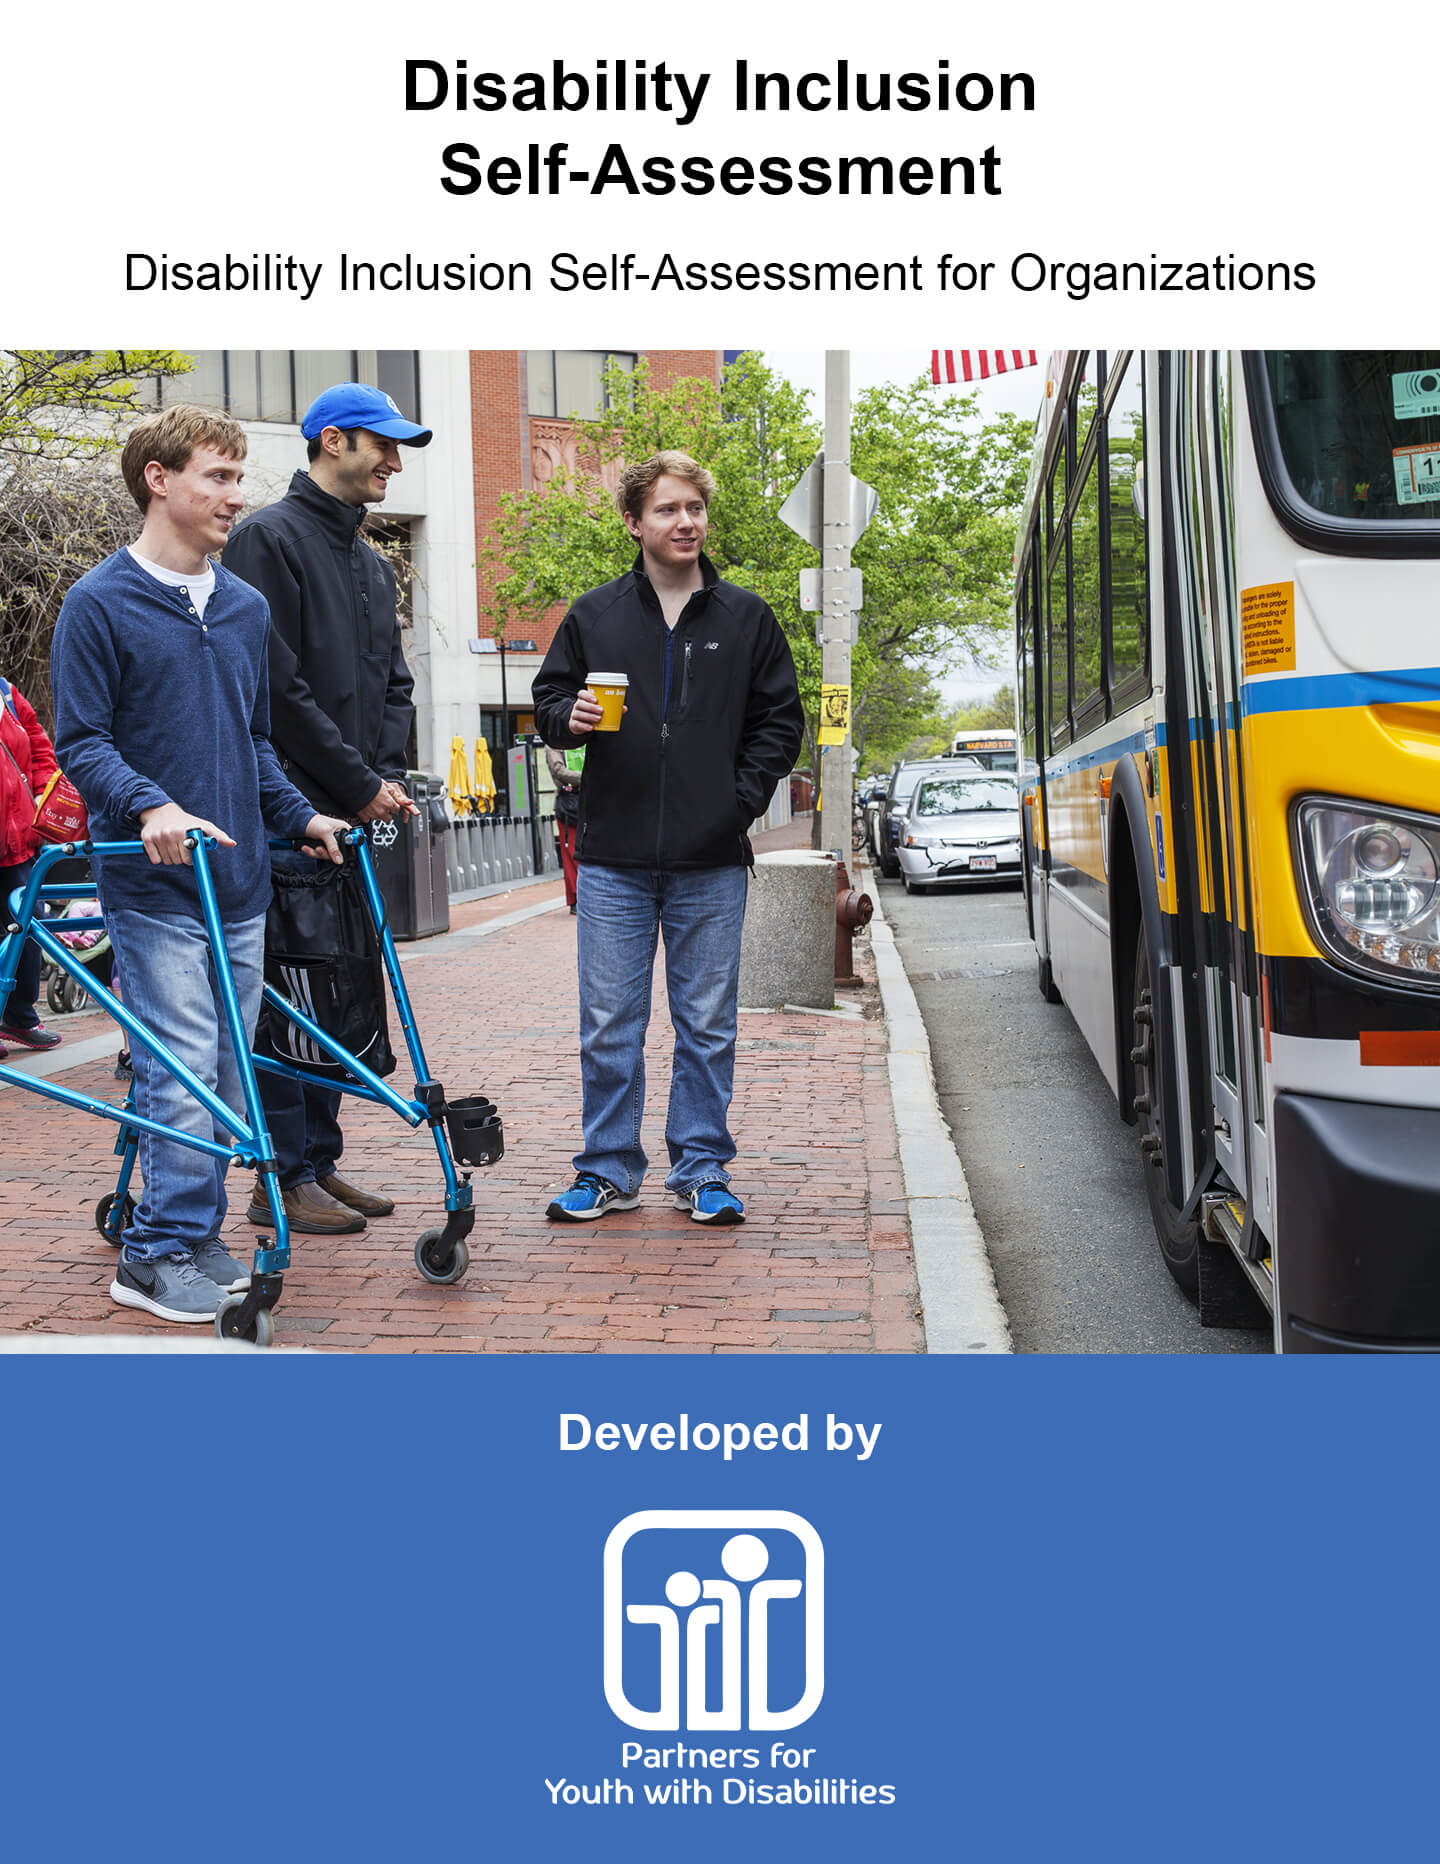 Disability Inclusion Self-Assessment for Organizations